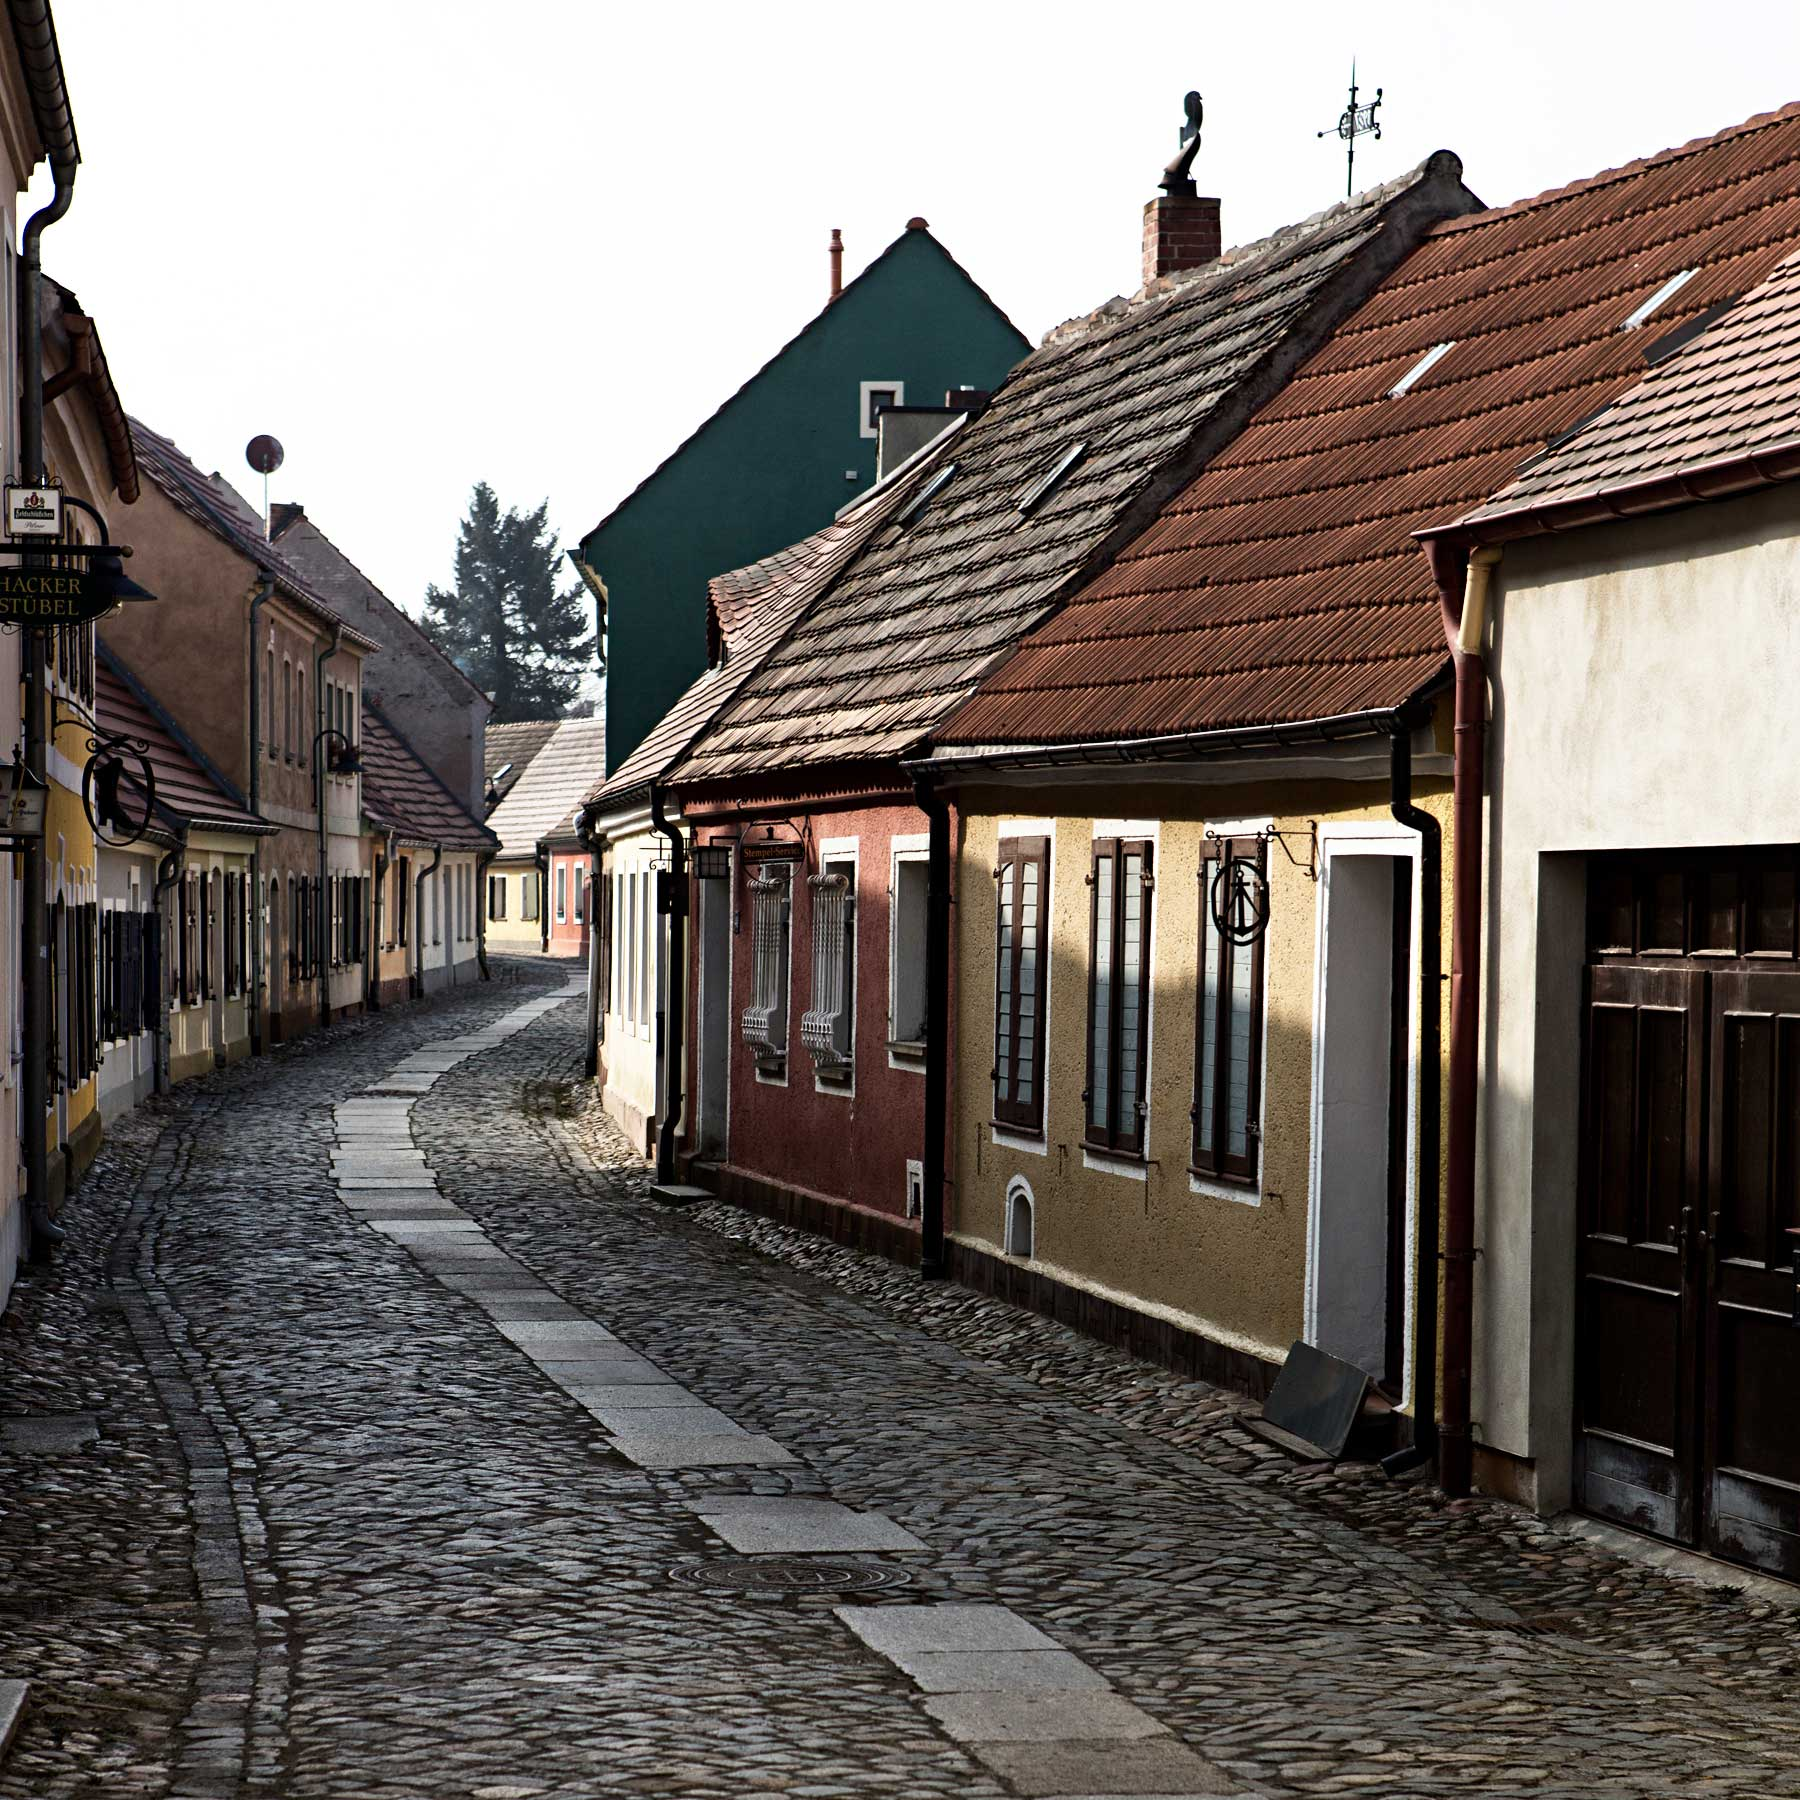 The main walking street in the old town of Hoyerswerda.